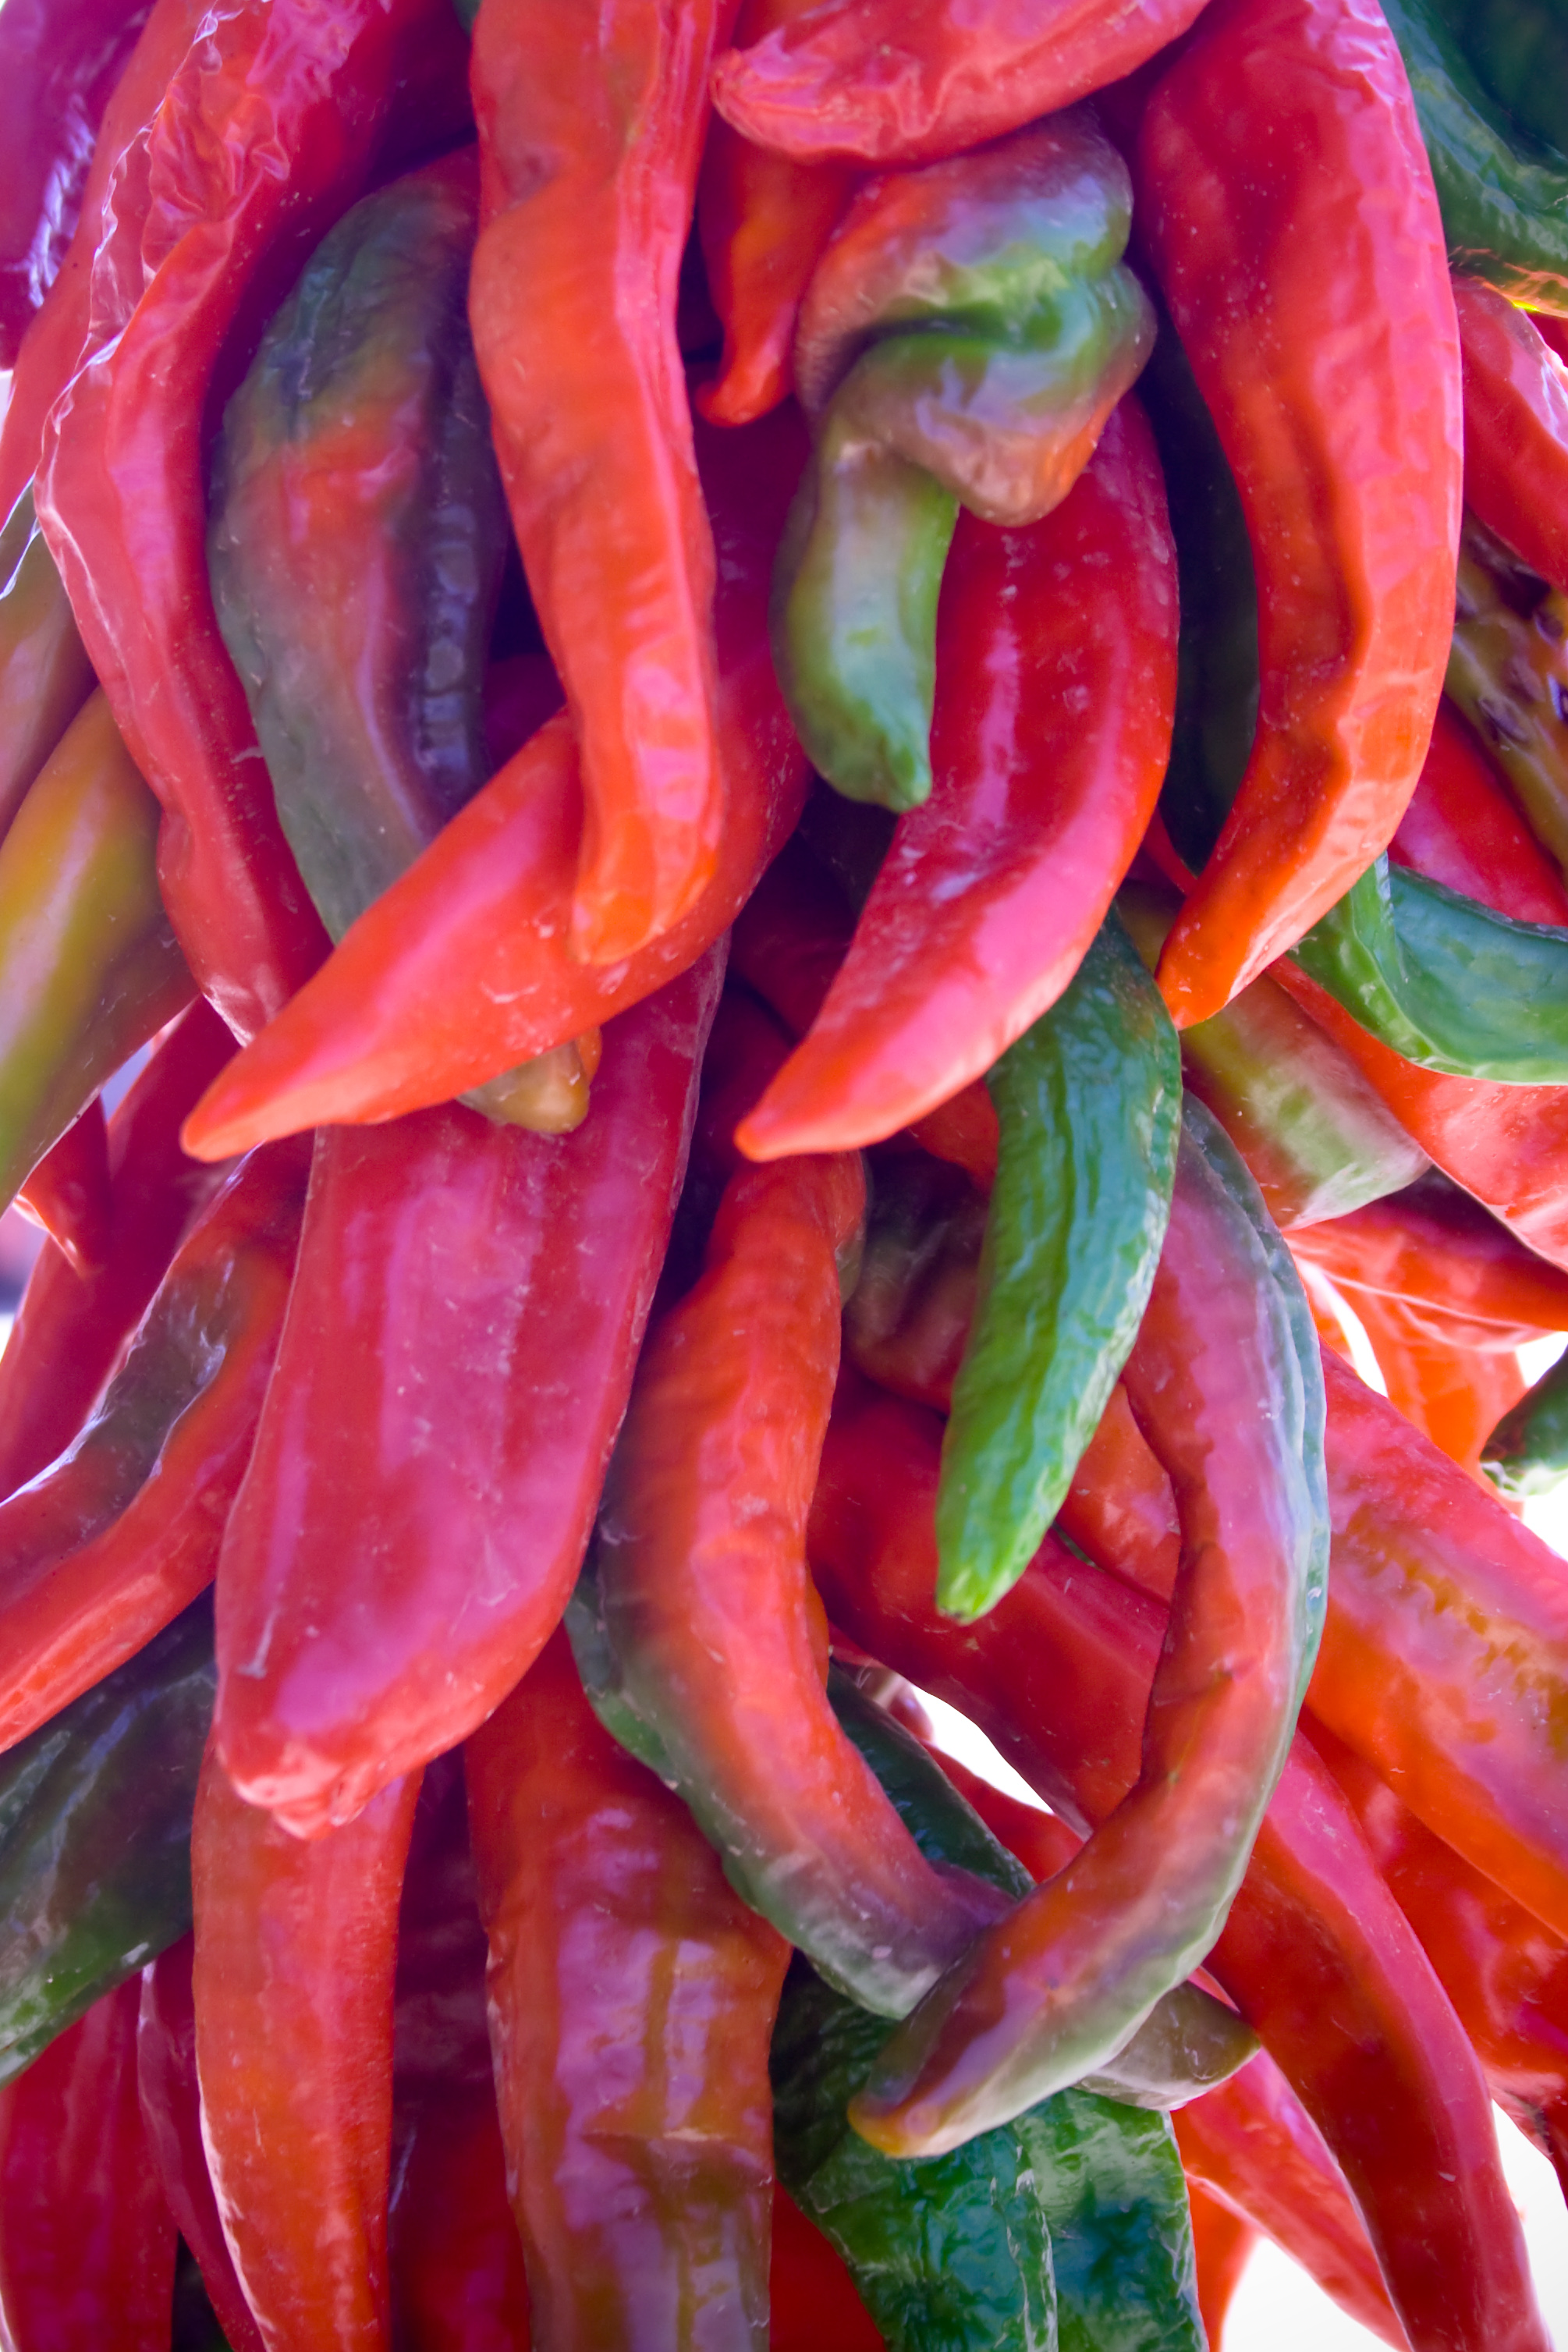 Hanging Chilies, Adobe, Lots, Spicy, Southwest, HQ Photo